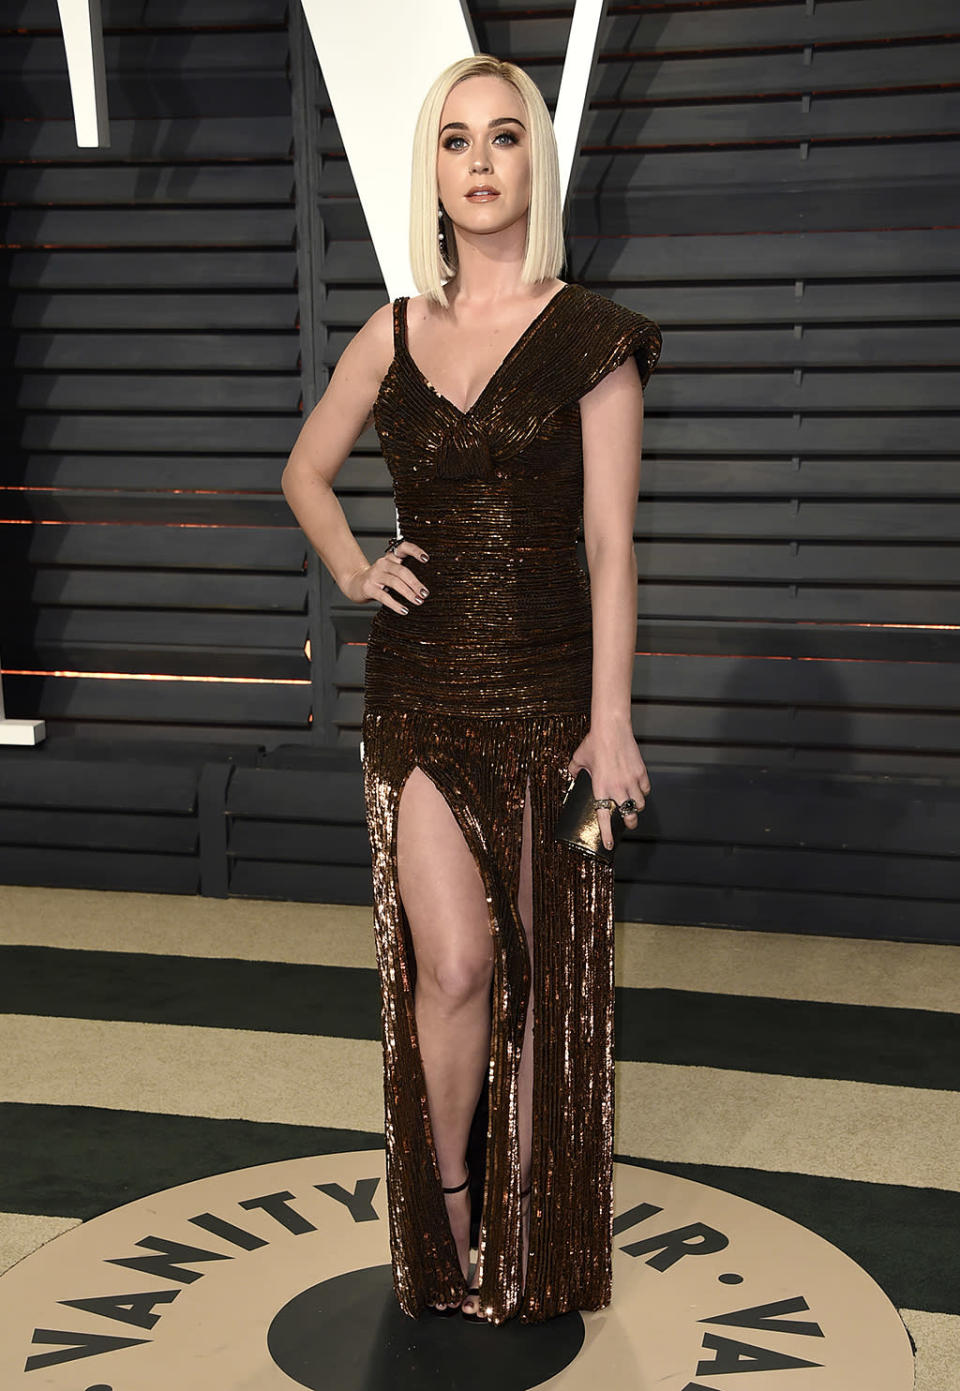 <p>Katy Perry arrives at the Vanity Fair Oscar Party on Sunday, Feb. 26, 2017, in Beverly Hills, Calif. (Photo by Evan Agostini/Invision/AP) </p>